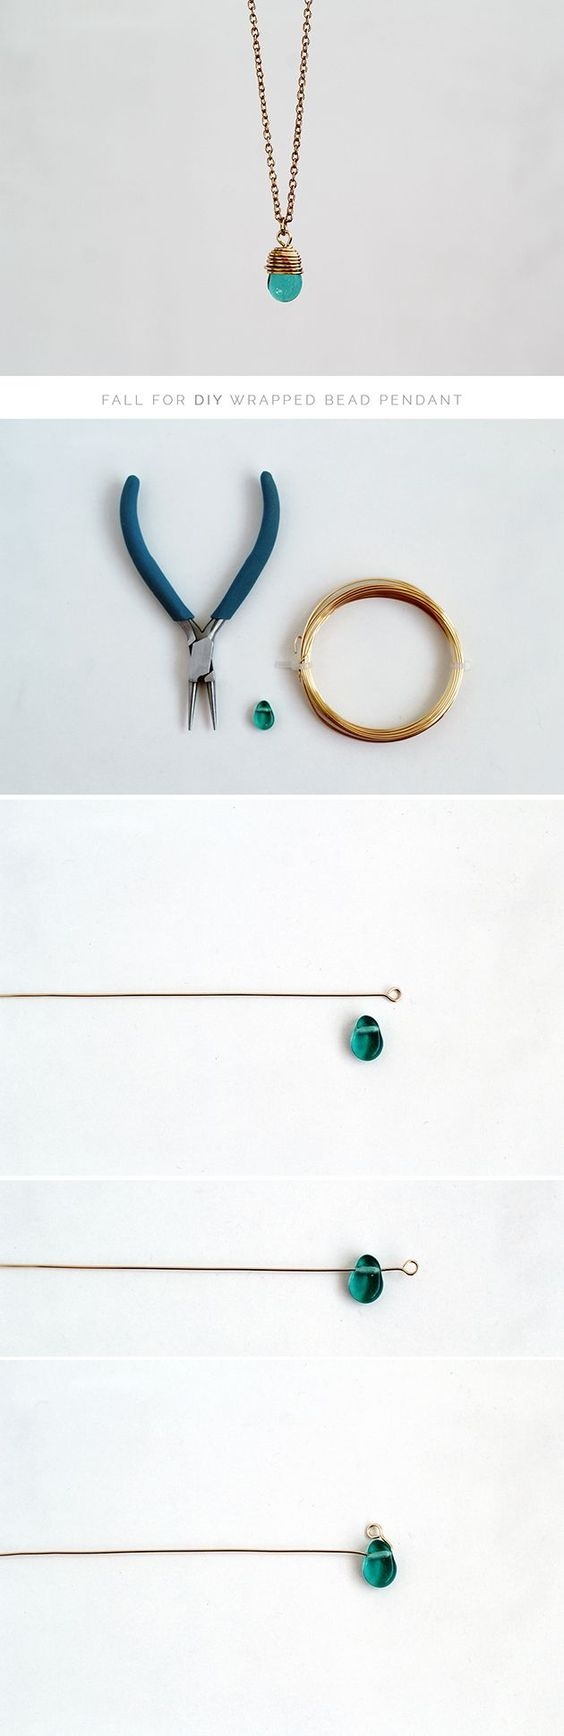 Fall For DIY How To Wrap a Bead #jewellery #jewelry